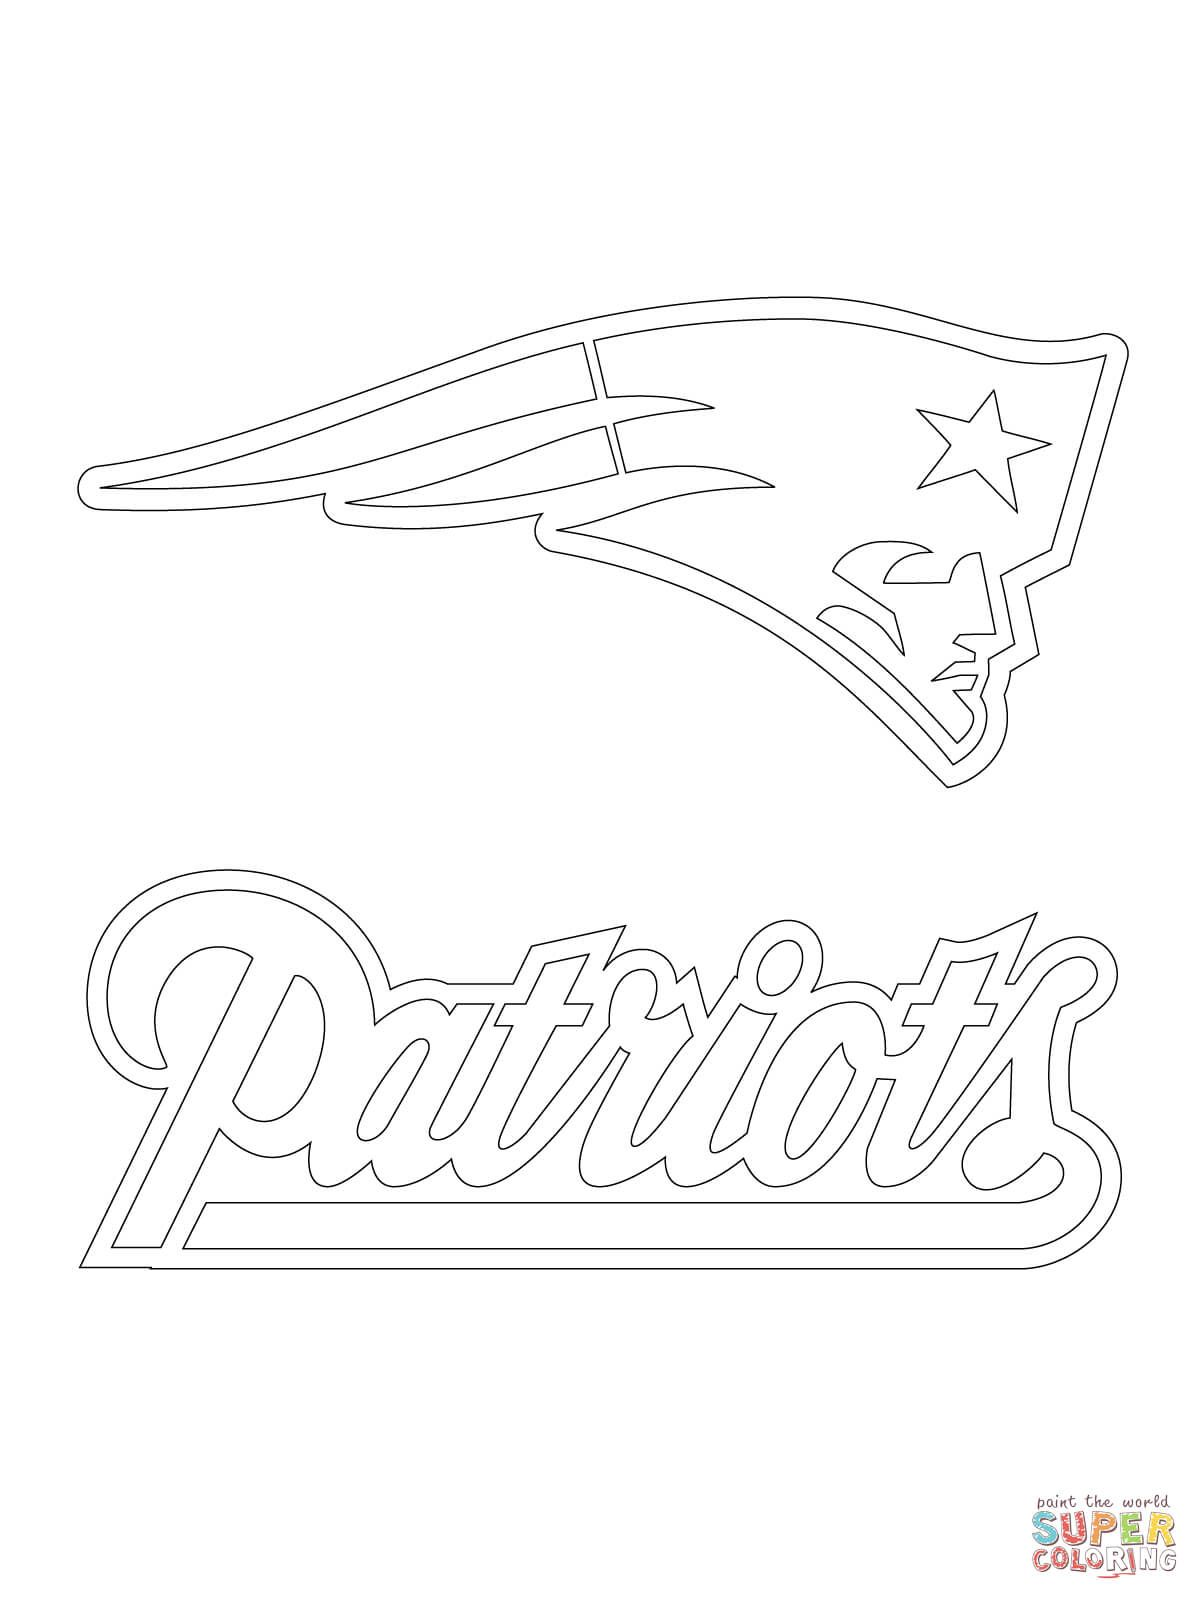 patriots coloring pages new england patriots logo coloring pages at getdrawings coloring patriots pages